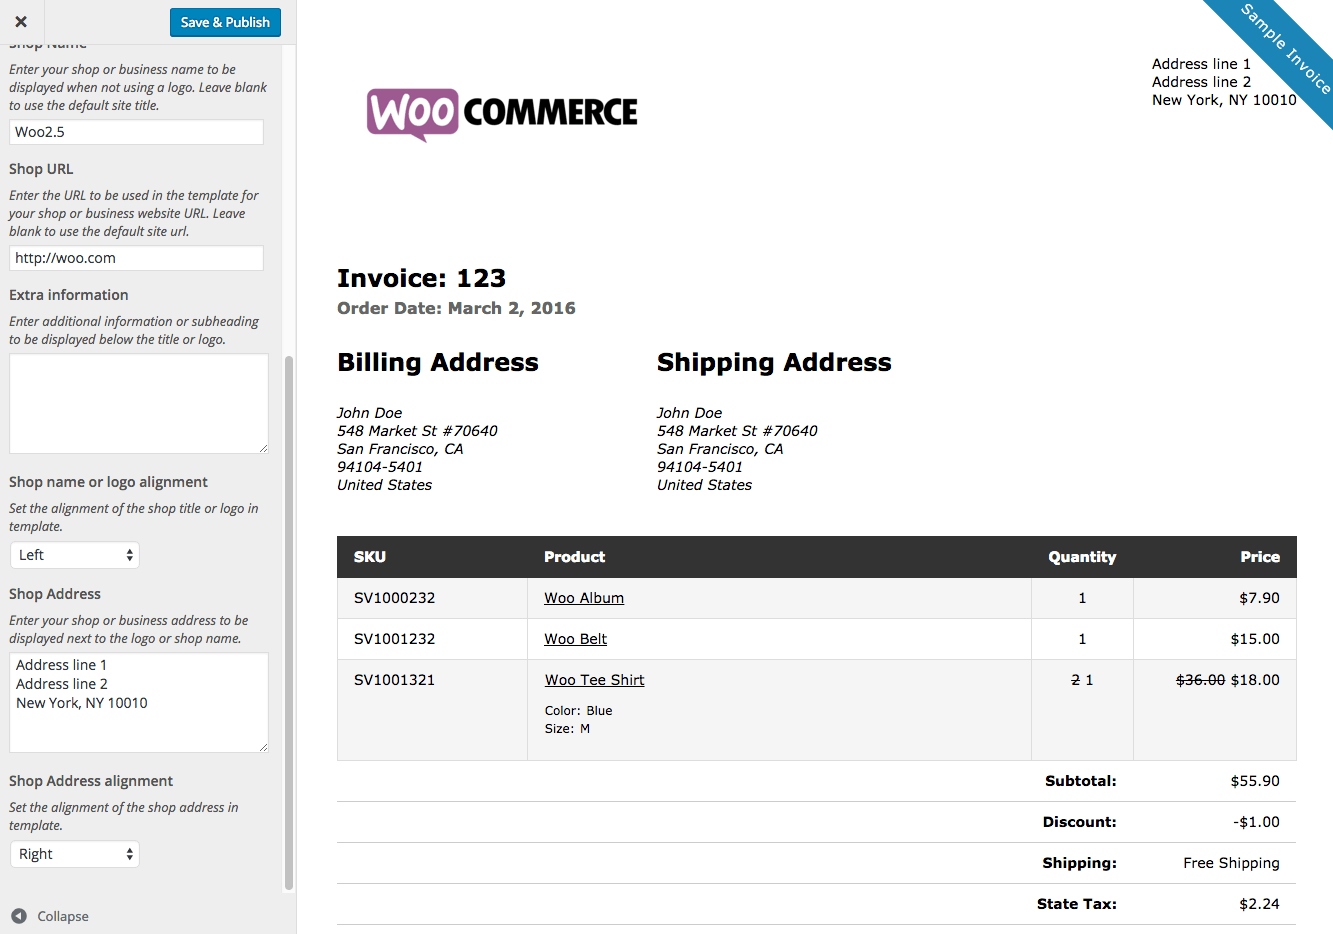 Usdgus  Surprising Print Invoices Amp Packing Lists  Woocommerce With Exquisite Woocommerce Print Invoices  Packing Lists Customizer With Attractive Services Invoice Template Also Difference Between Msrp And Invoice Price In Addition Free Invoice Templates For Word And Pest Control Invoice Template As Well As Automotive Repair Invoice Software Additionally Online Invoicing And Payment From Woocommercecom With Usdgus  Exquisite Print Invoices Amp Packing Lists  Woocommerce With Attractive Woocommerce Print Invoices  Packing Lists Customizer And Surprising Services Invoice Template Also Difference Between Msrp And Invoice Price In Addition Free Invoice Templates For Word From Woocommercecom